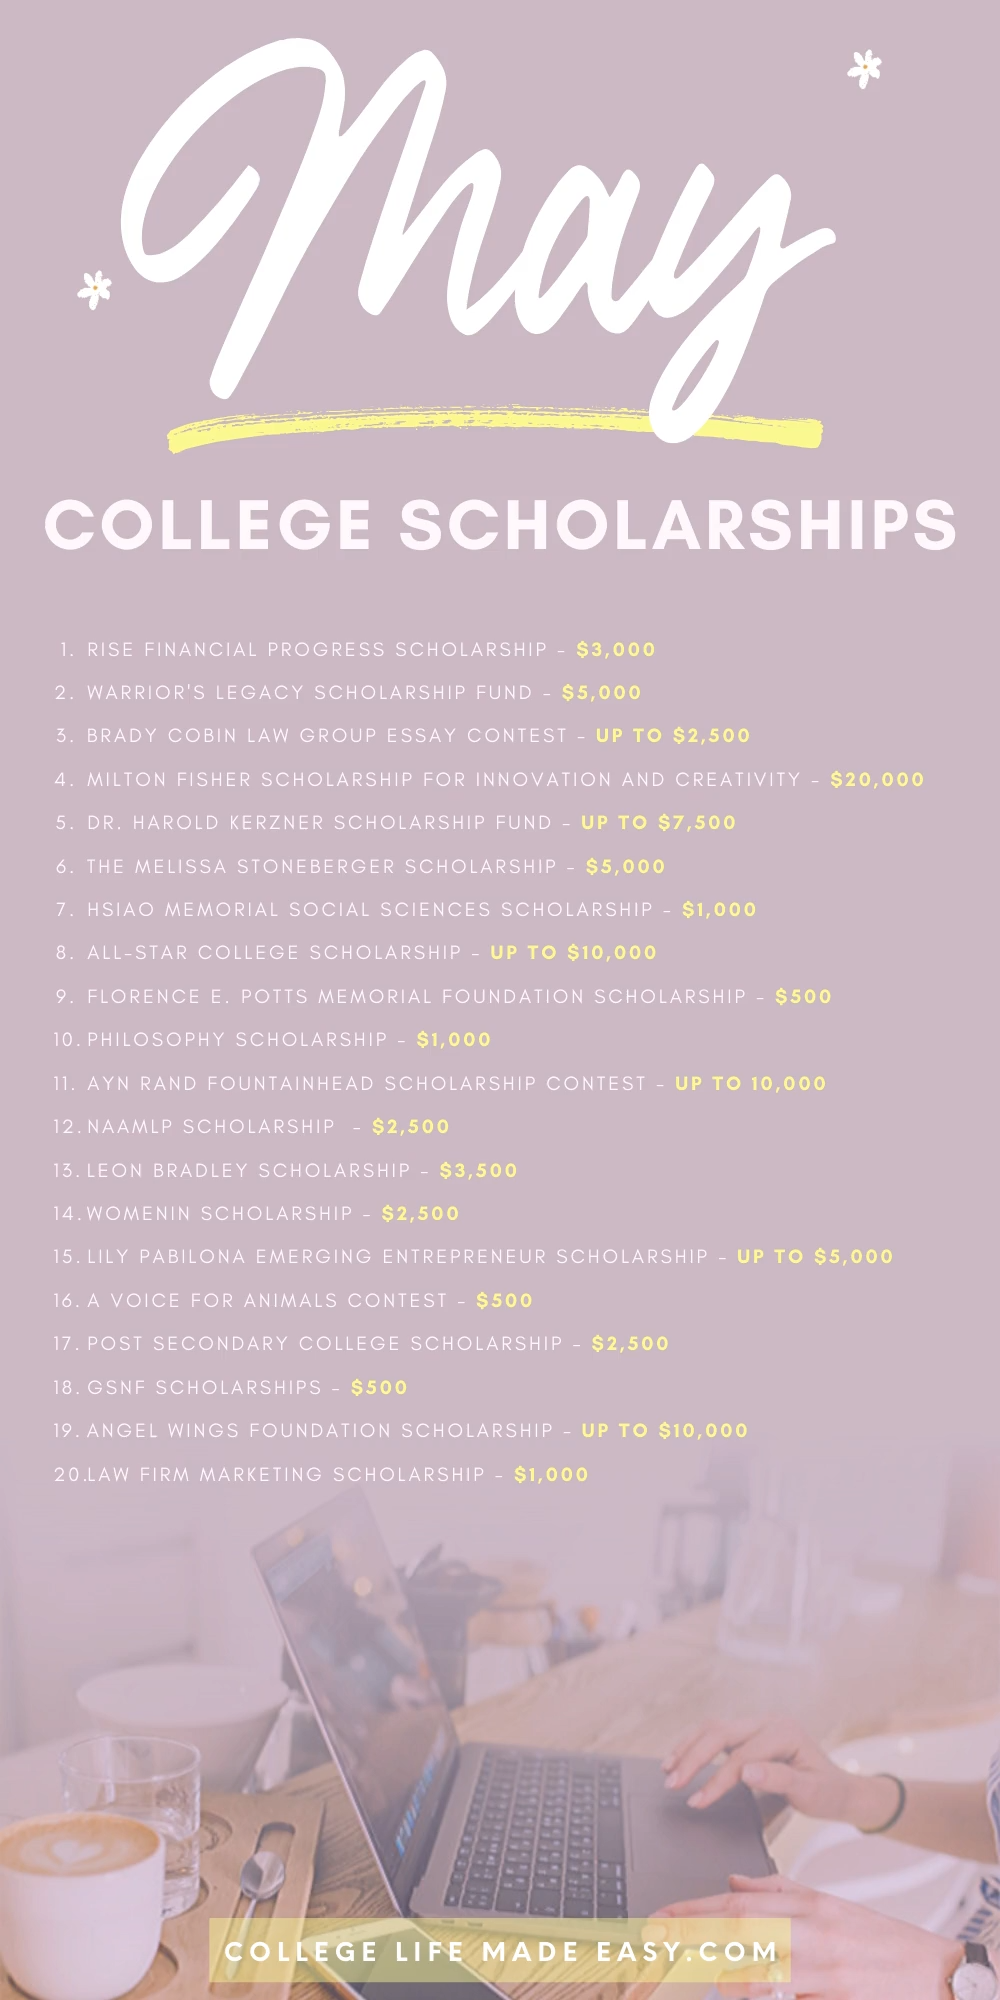 42 ways for high school, college and graduate students to win free money for school. Don't miss out on these May scholarship deadlines! #collegescholarships